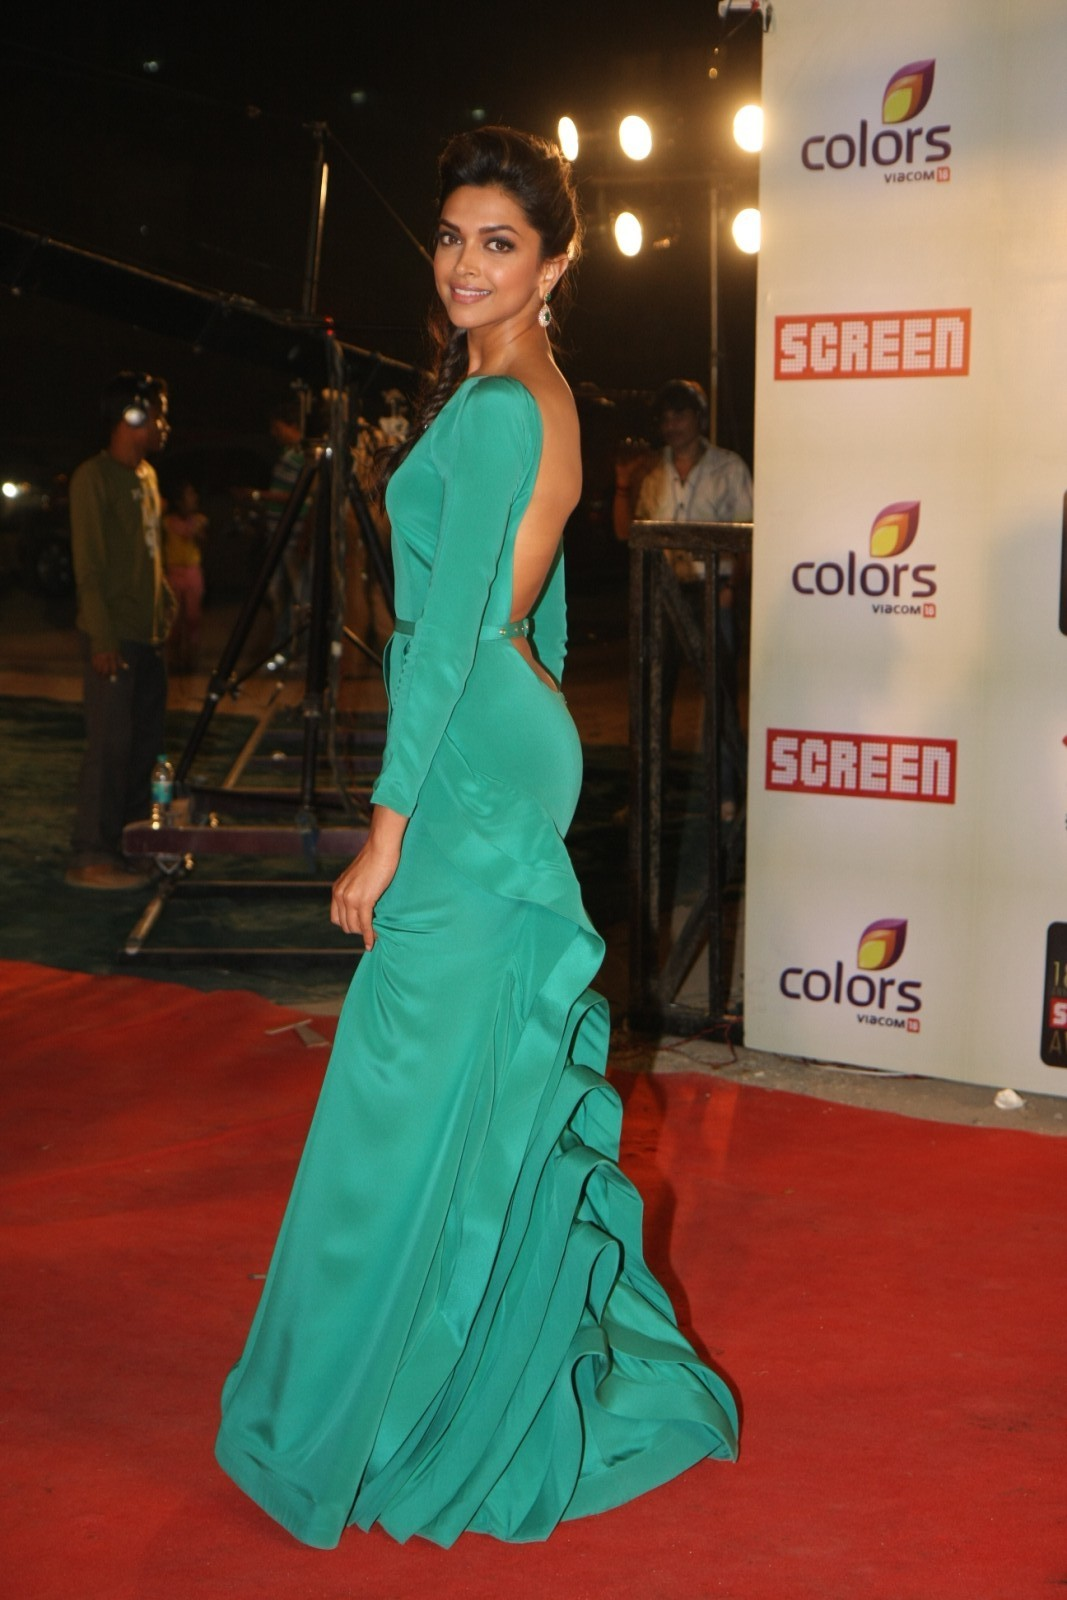 High Quality Bollywood Celebrity Pictures Deepika -8575